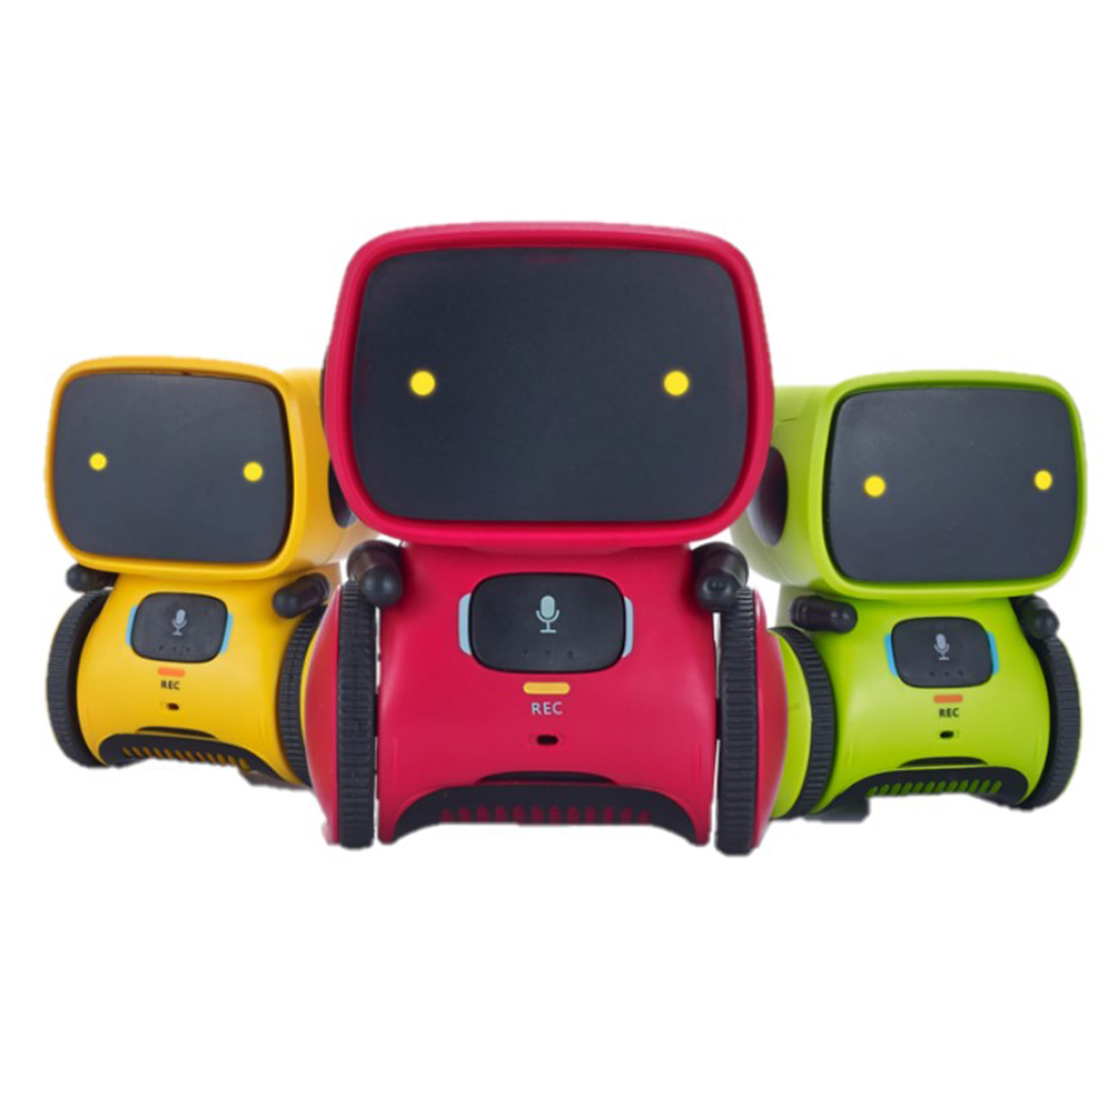 Intelligent Robots for Kids Dance Music Recording Dialogue Touch-Sensitive Control Interactive Toy S